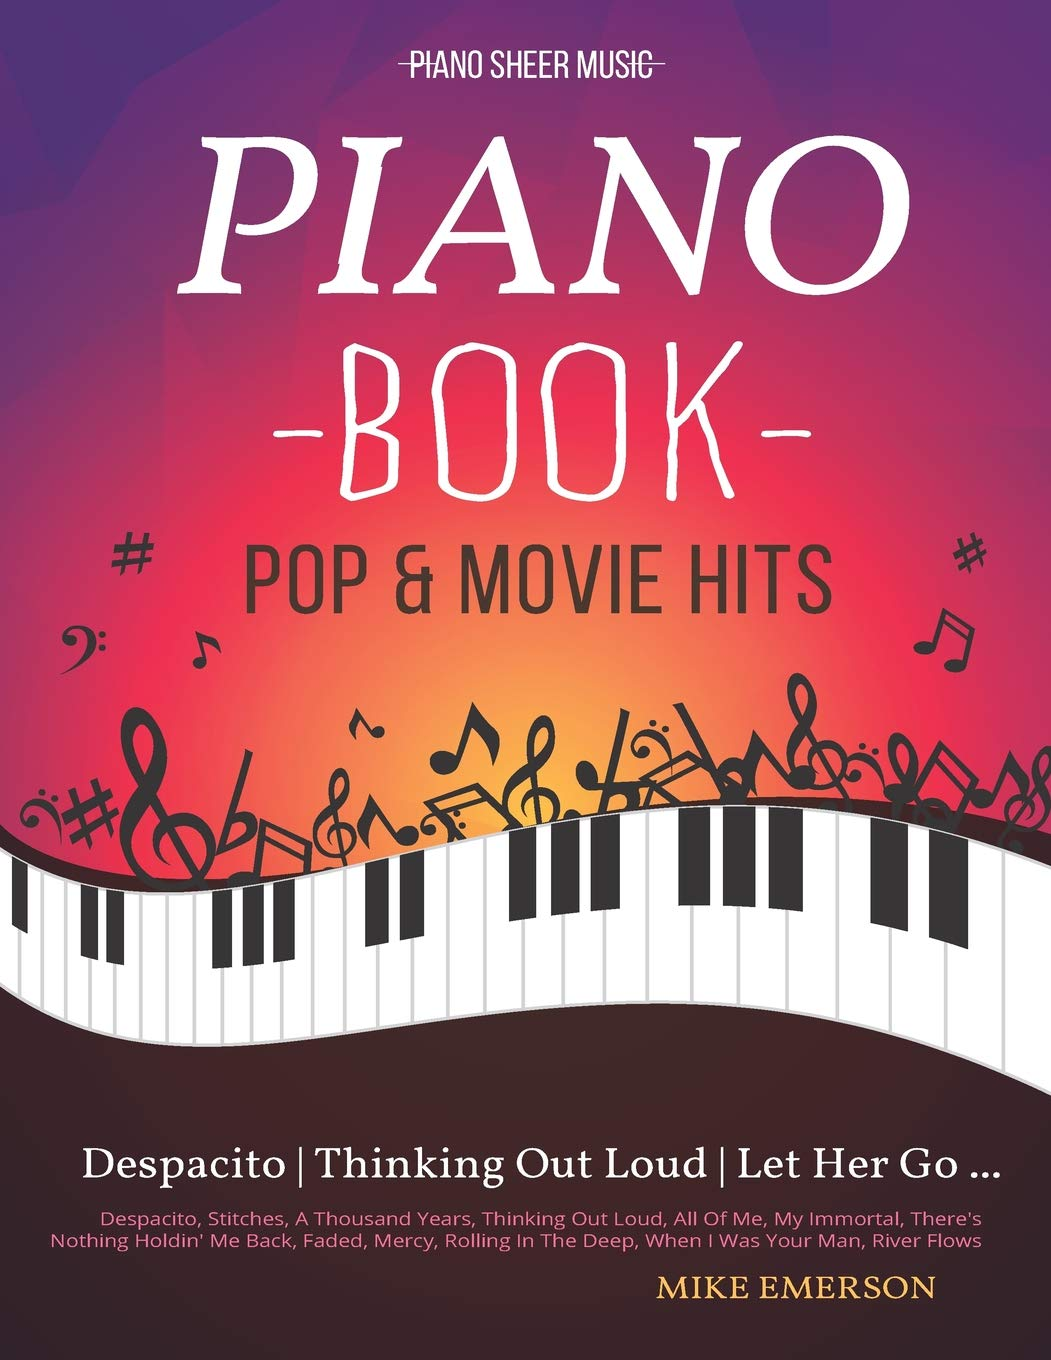 Piano Book Pop & Movie Hits: Piano Sheet Music: Amazon.es: Emerson ...